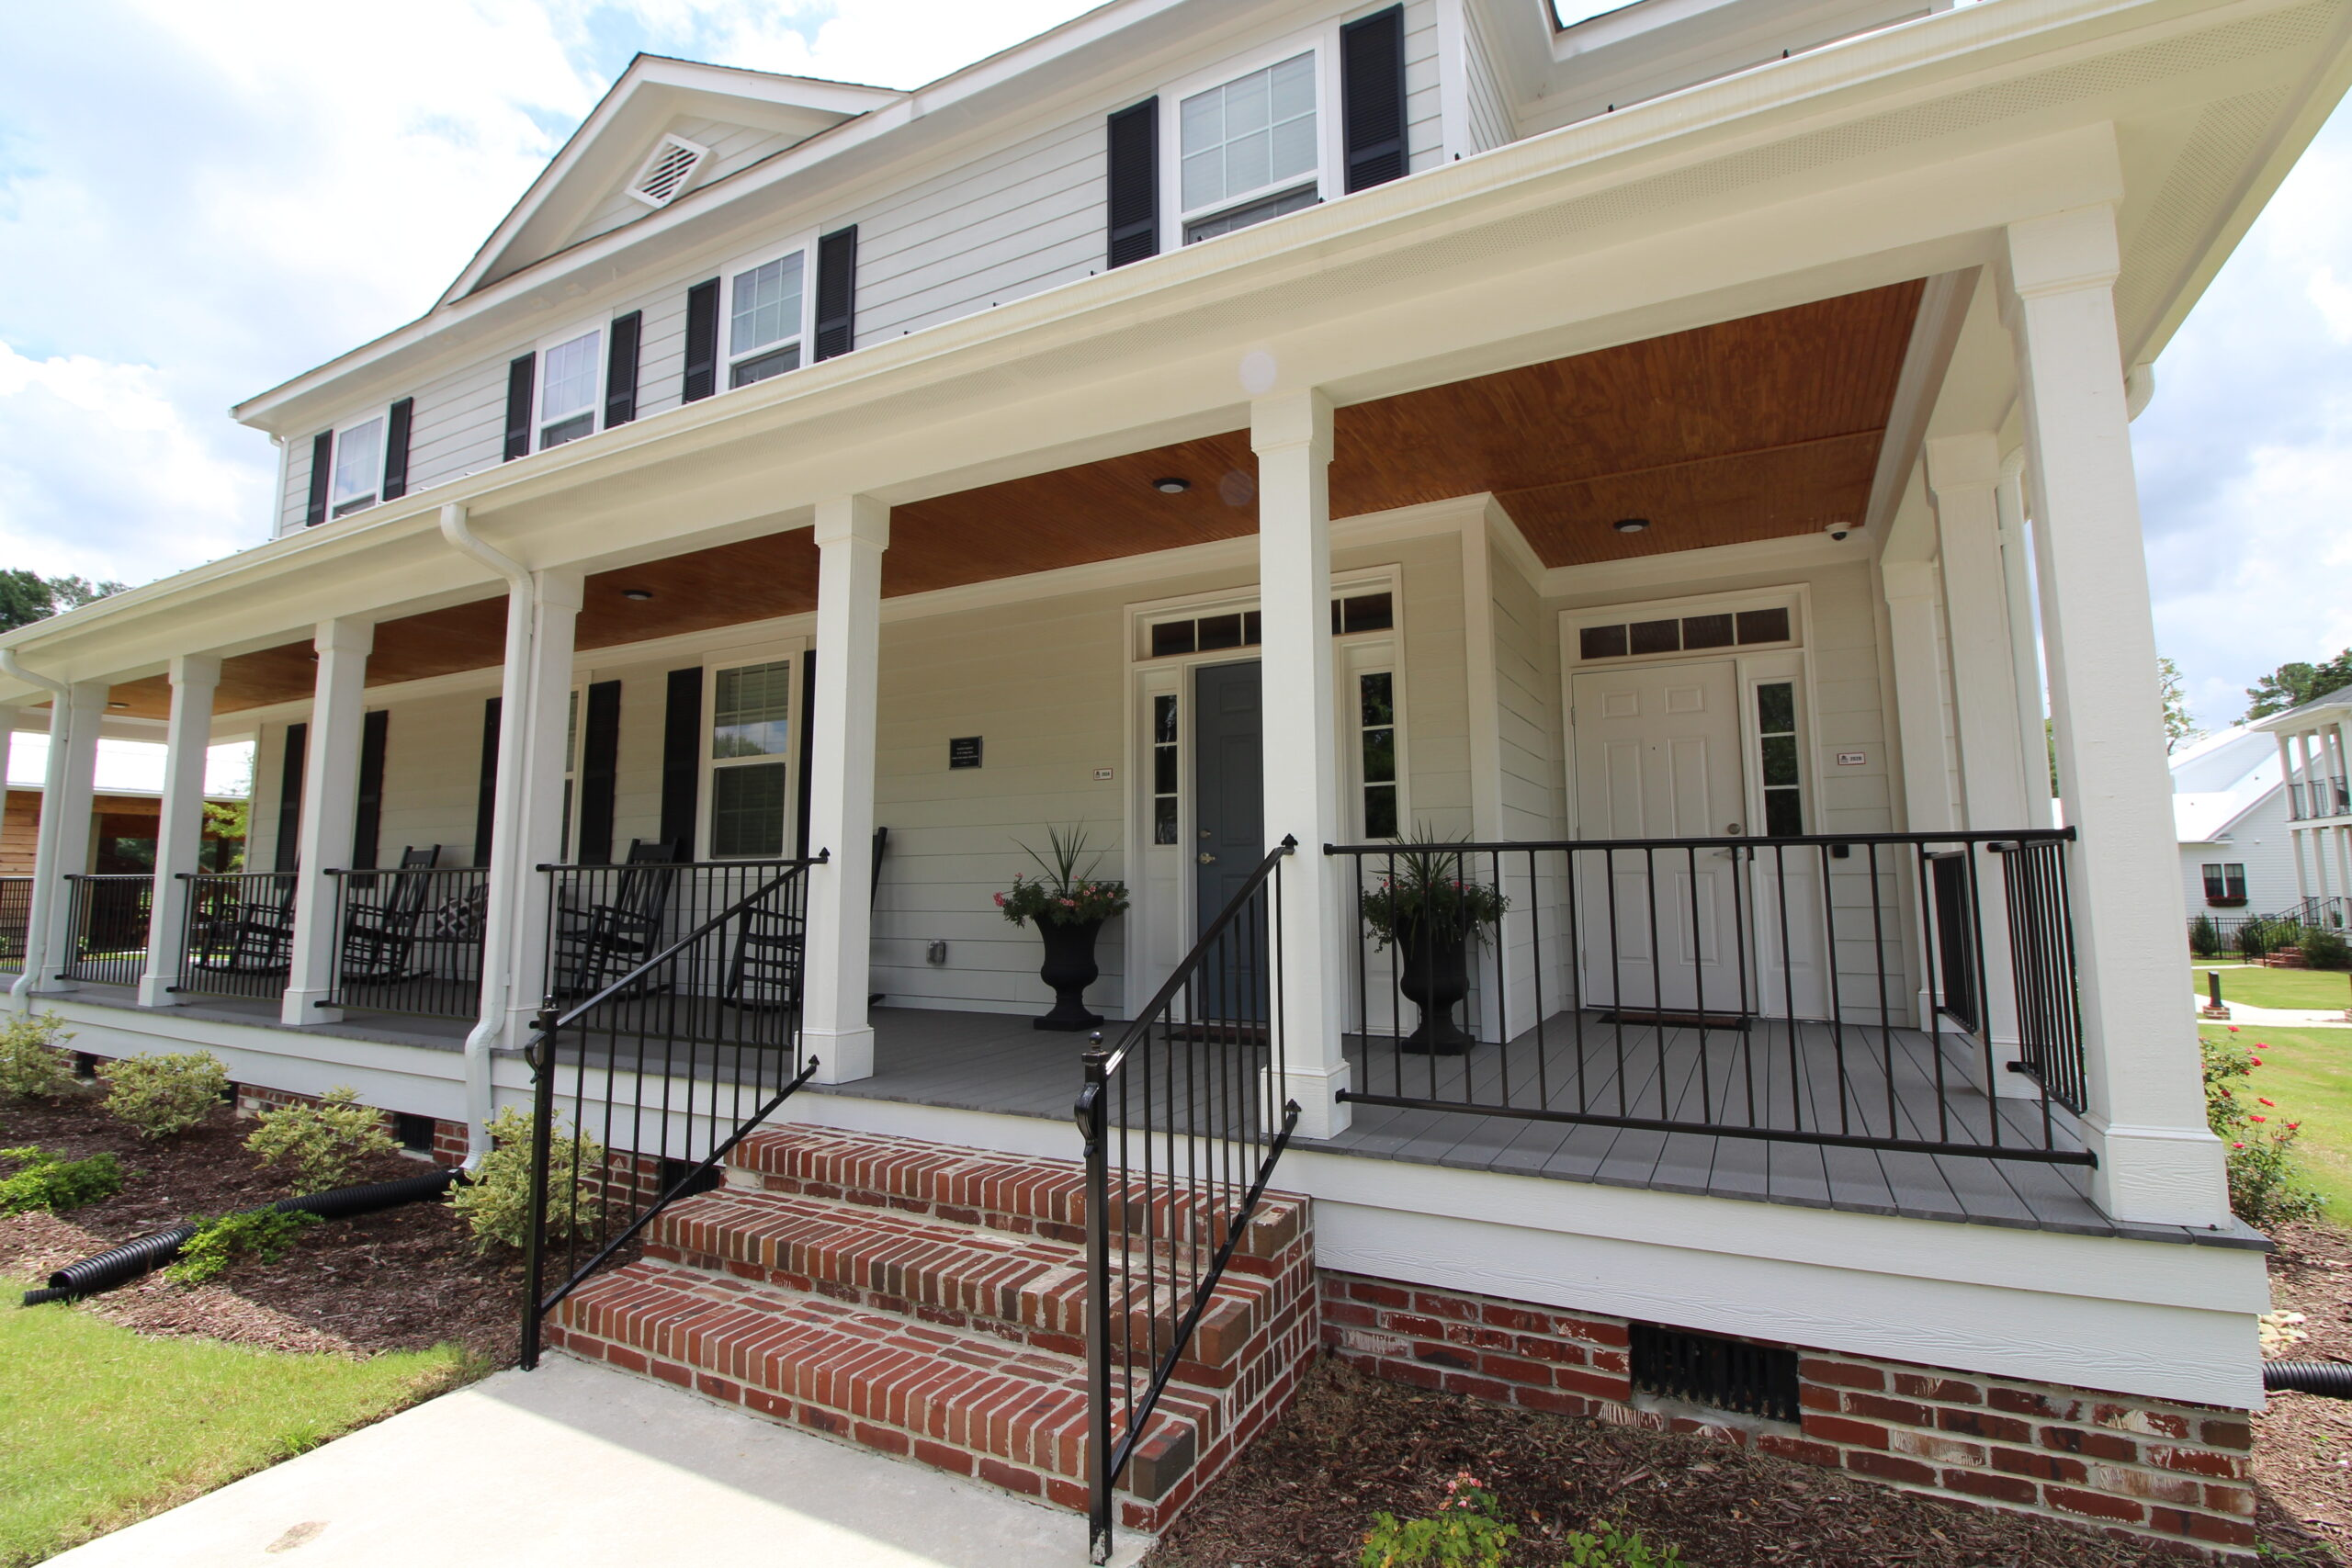 Two story house with a wrap around porch